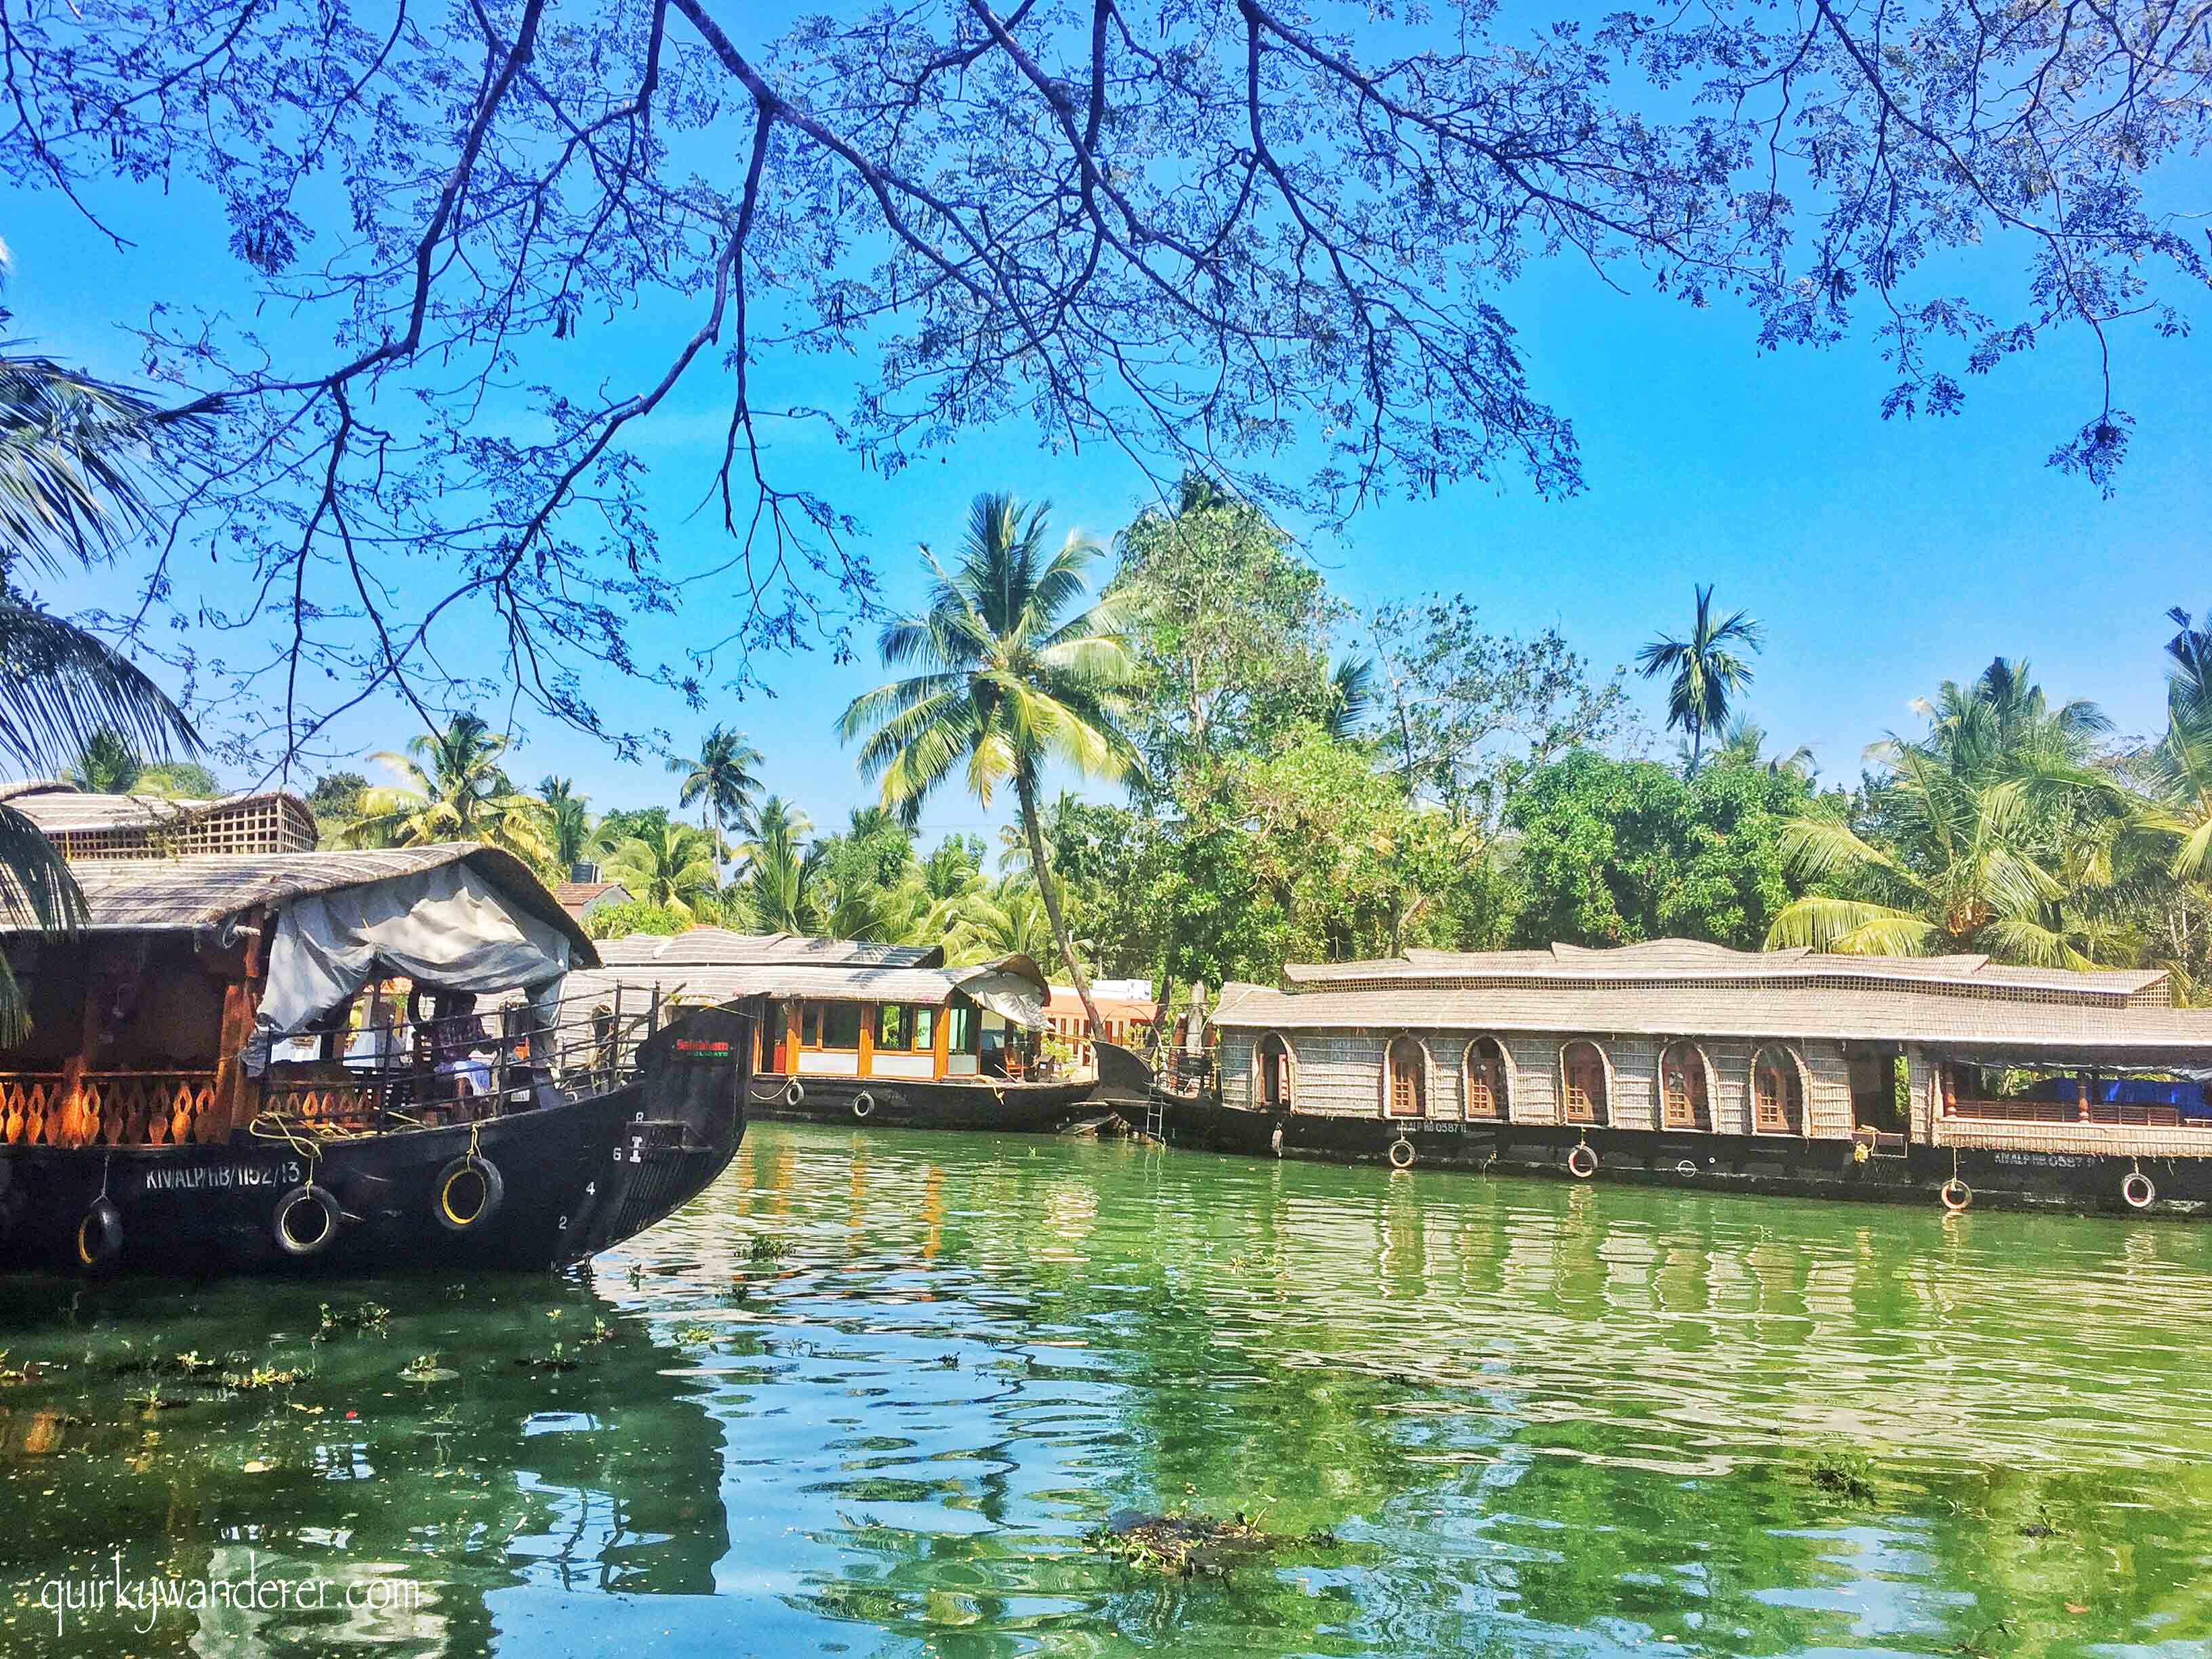 Scenic backwaters of Kumarakom